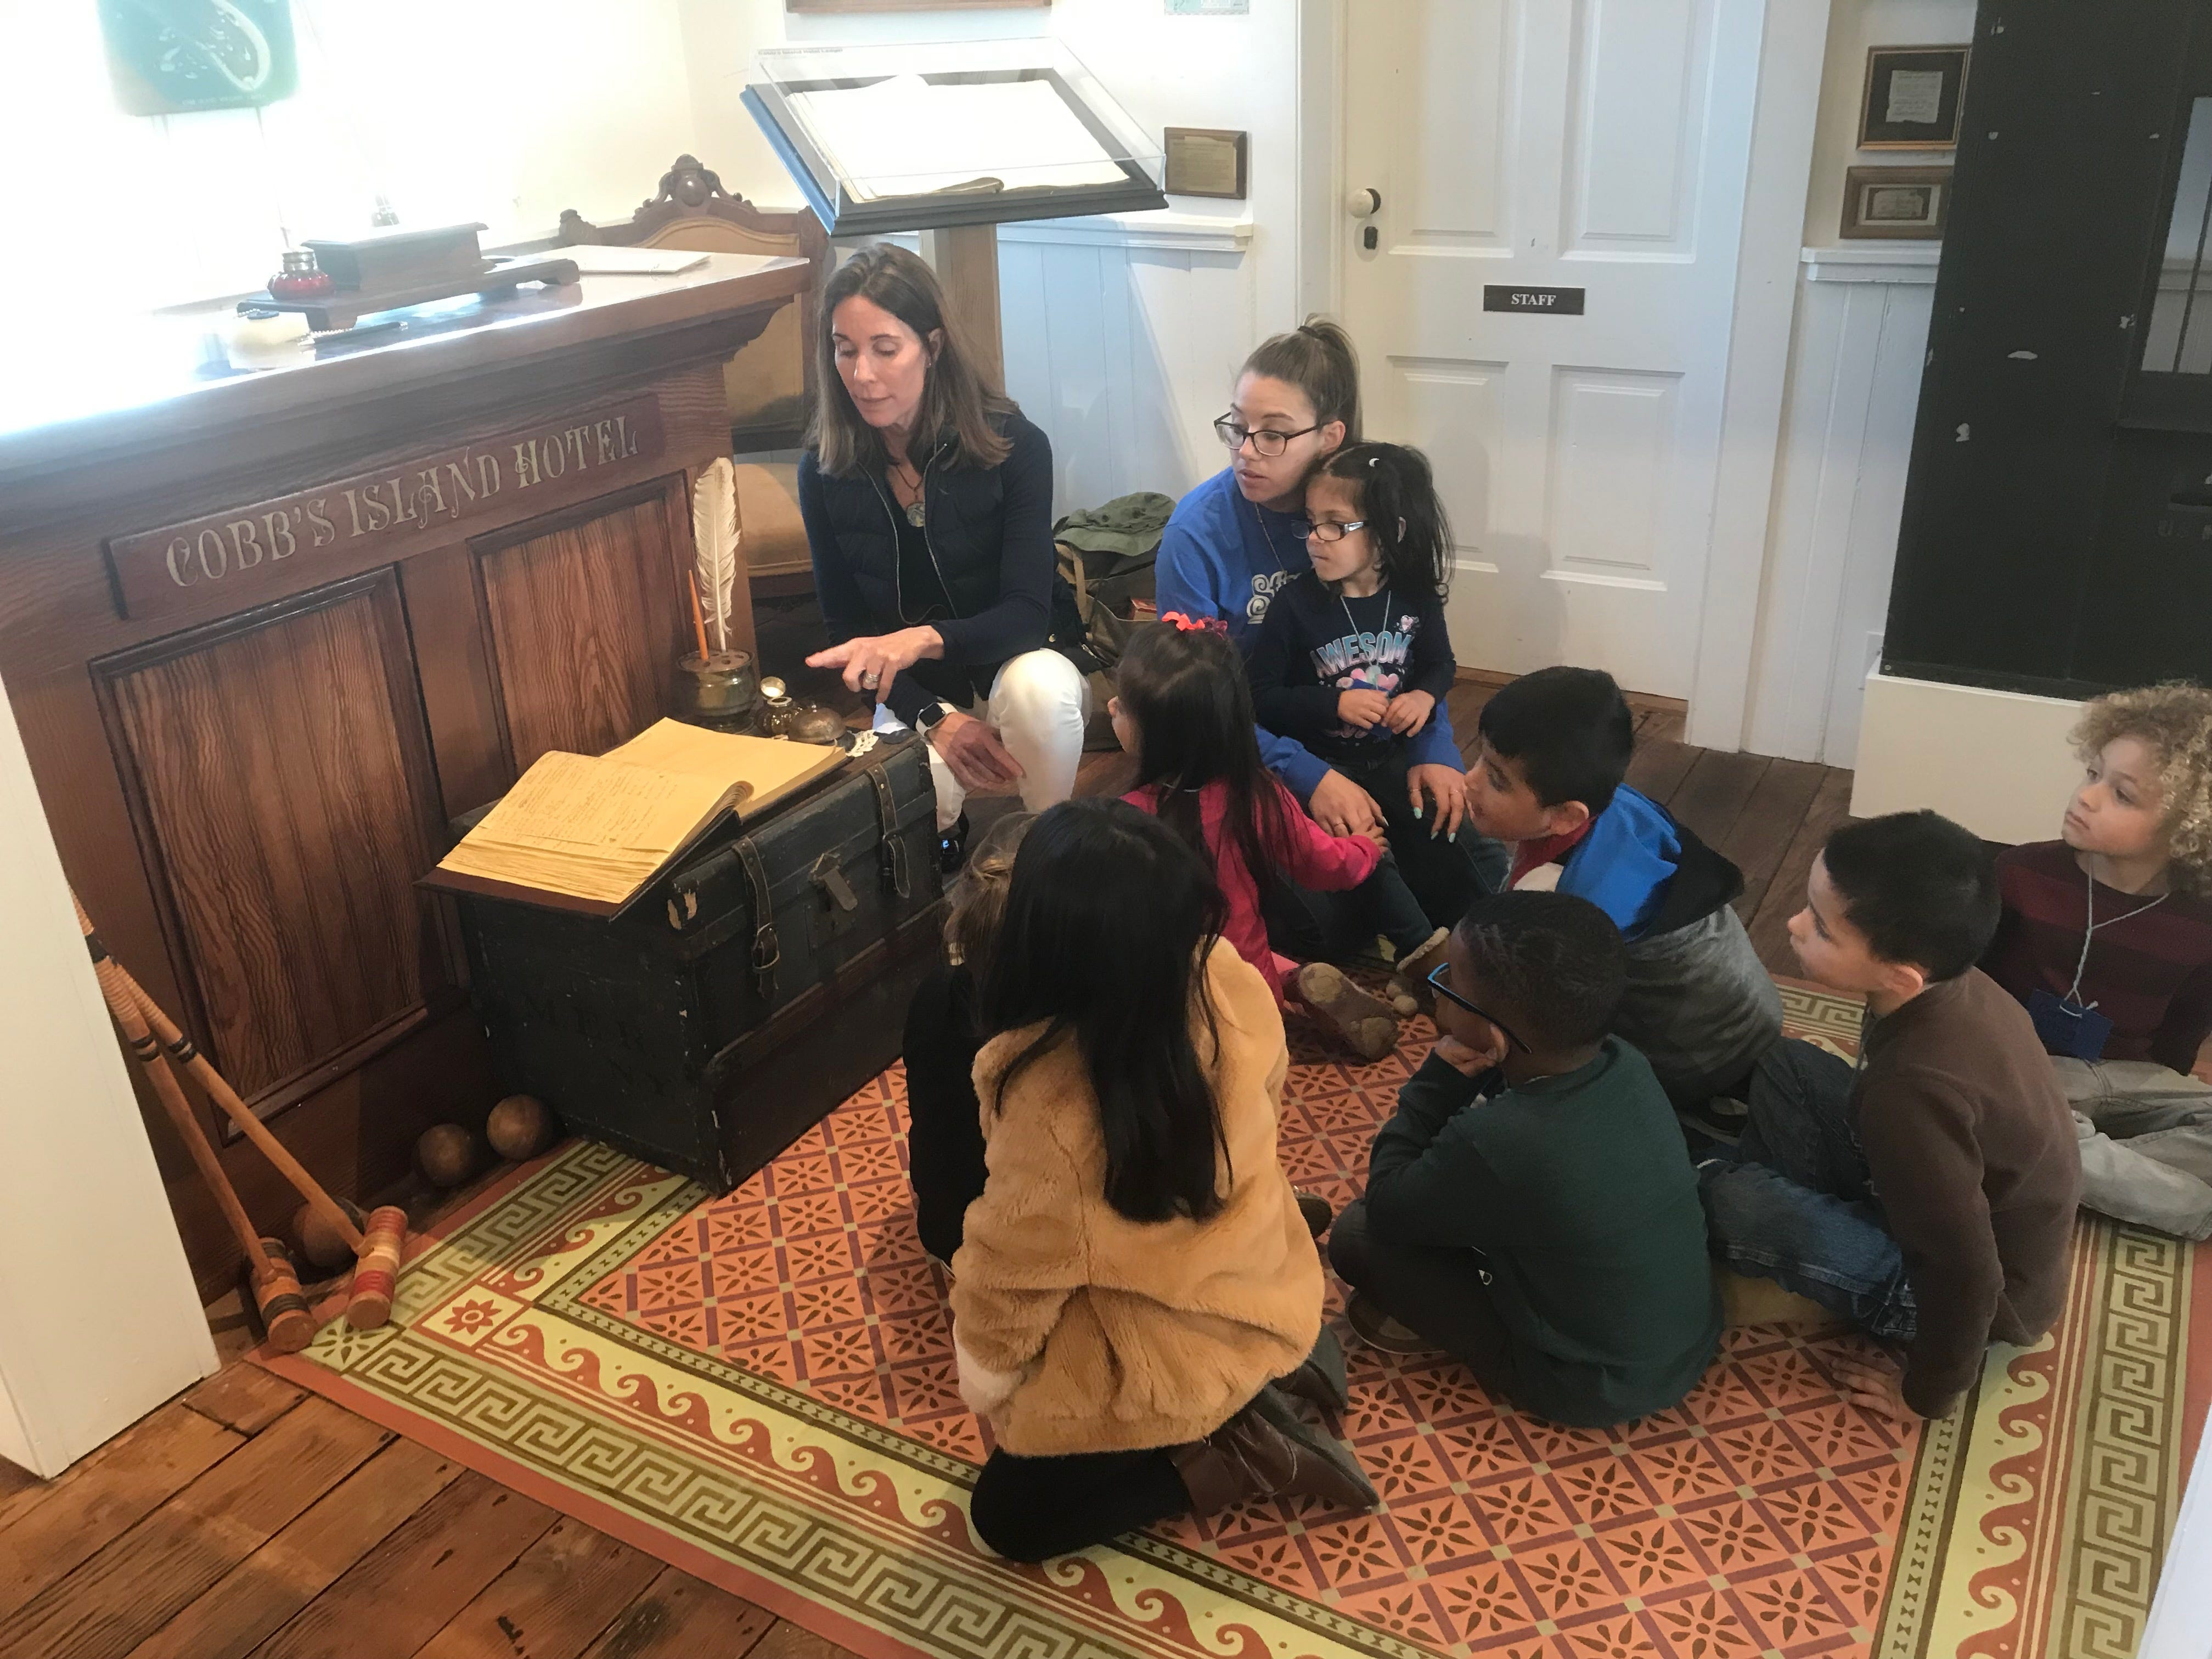 Sally Dickinson, education director, demonstrates how guests at the Cobb's Island Hotel checked in during a My First Field Trip event with Occohannock Elementary School pre-kindergarten students on Tuesday, March 26, 2019  at the Barrier Islands Center in Machipongo, Virginia.